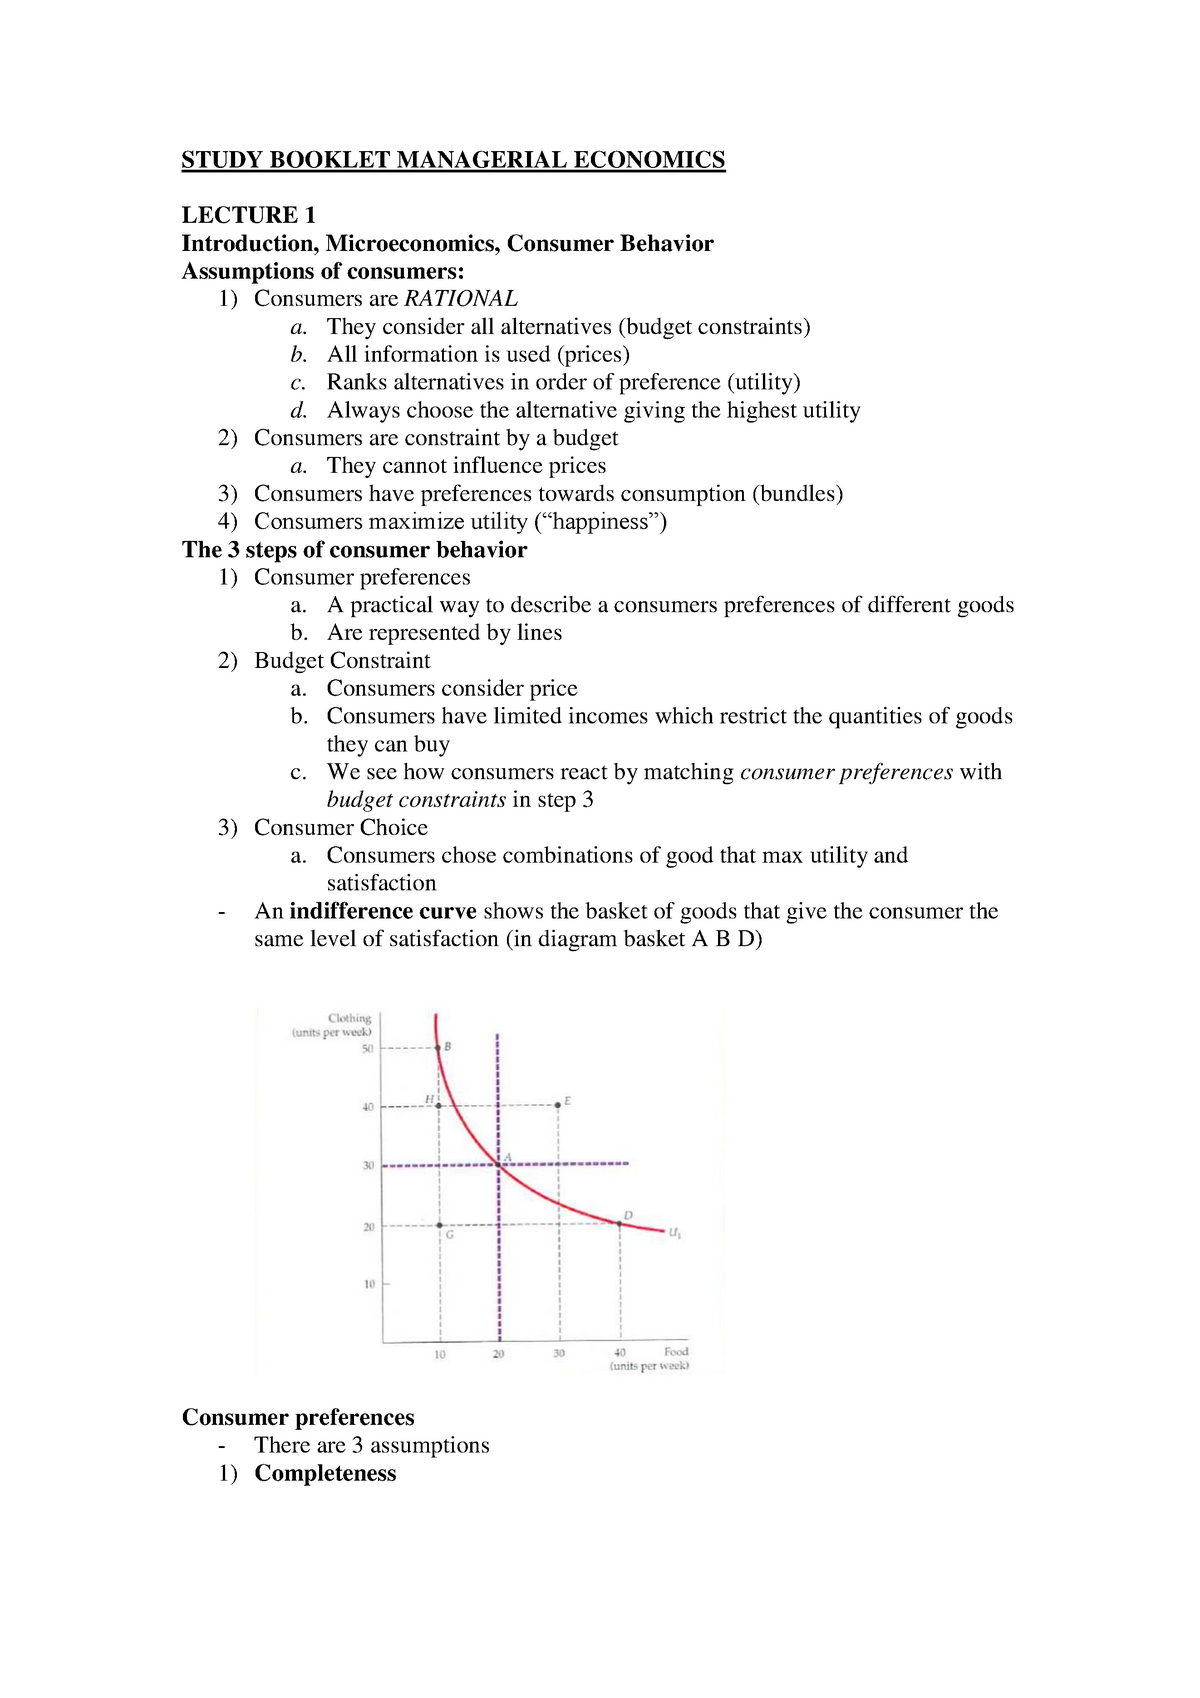 Lecture notes, lectures 1-9 - Lecture study booklet